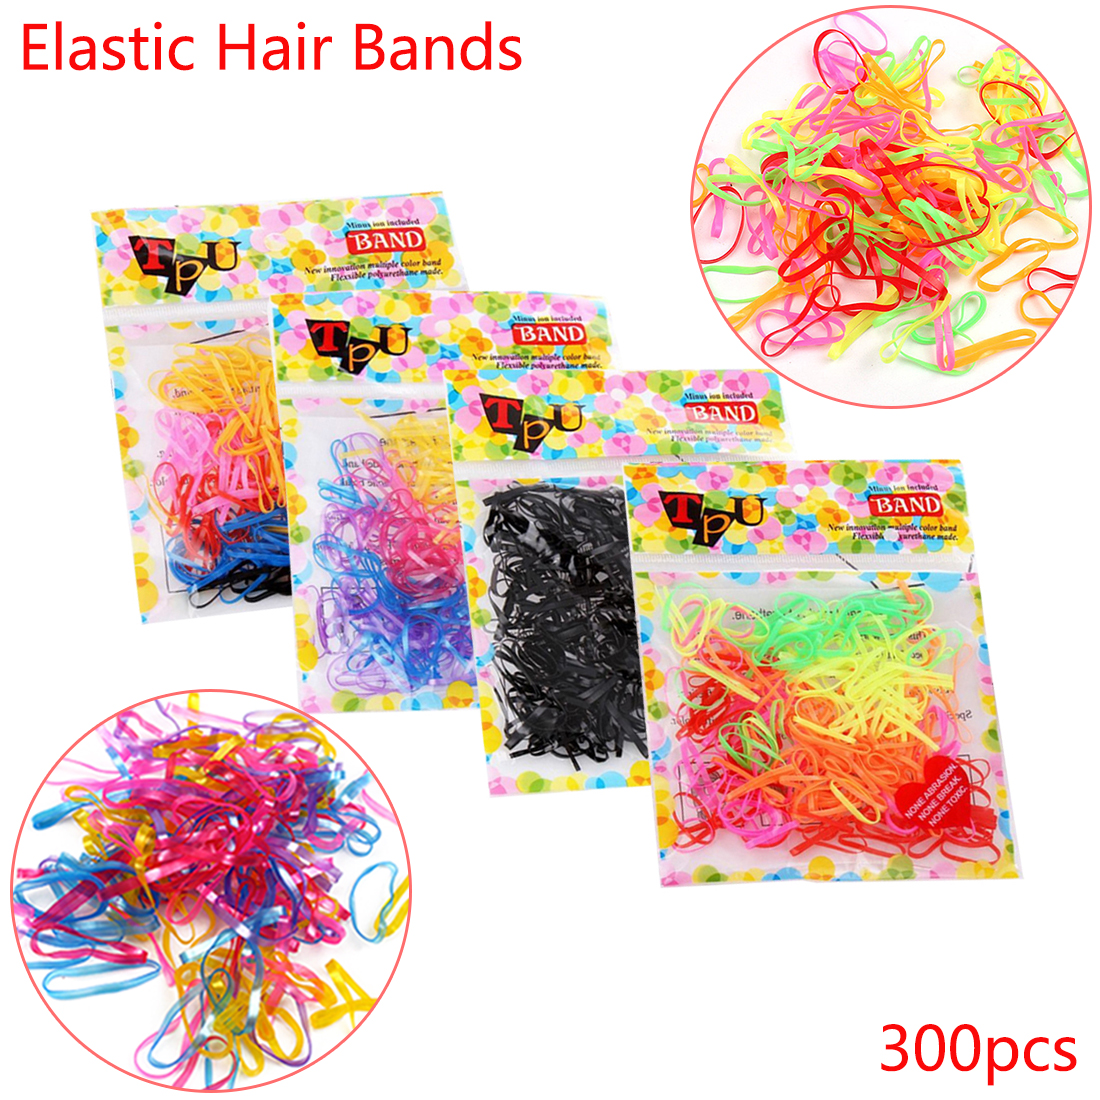 Colorful 300pcs/lot 3cm Headwear Hair Ropes Tie Gum Ponytail Holder Disposable Elastic Hair Bands Hair Accessories for Girls 2015 fashion elastic hair bands for women candy color baby girl kids headbands hair ropes headwear hair accessories 20 colors